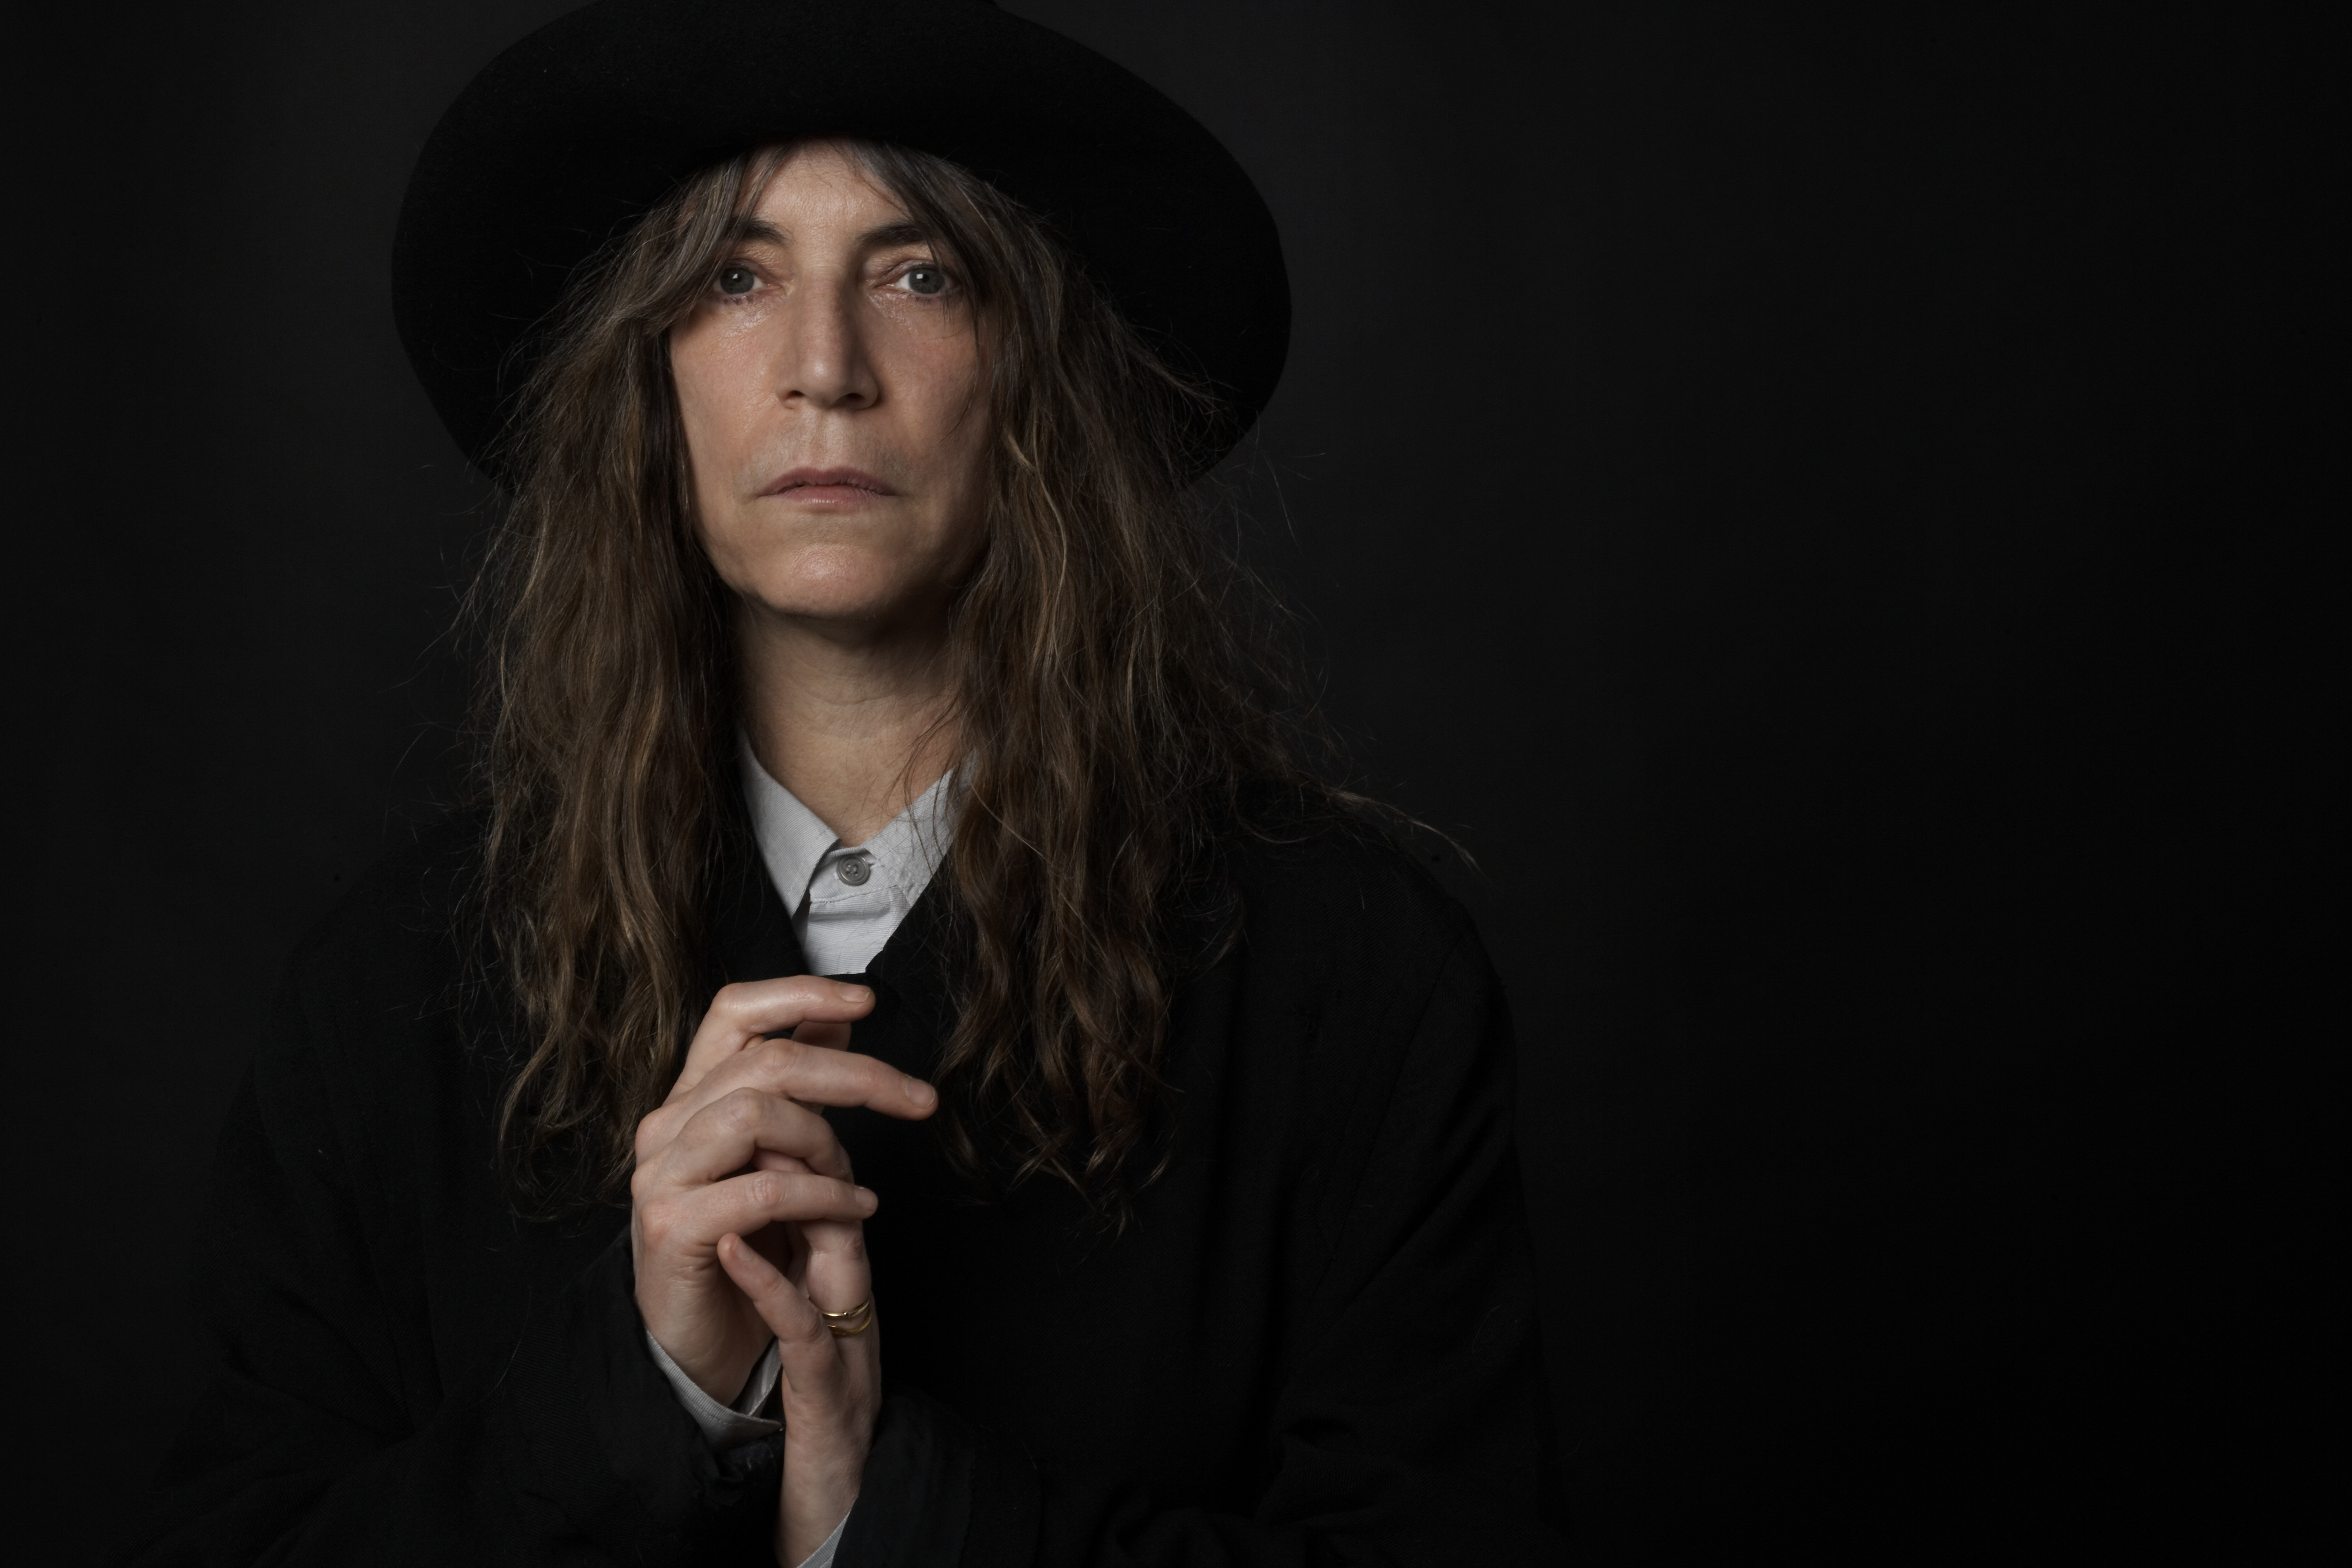 Patti Smith On Writing, Poetry And Music | KPBS